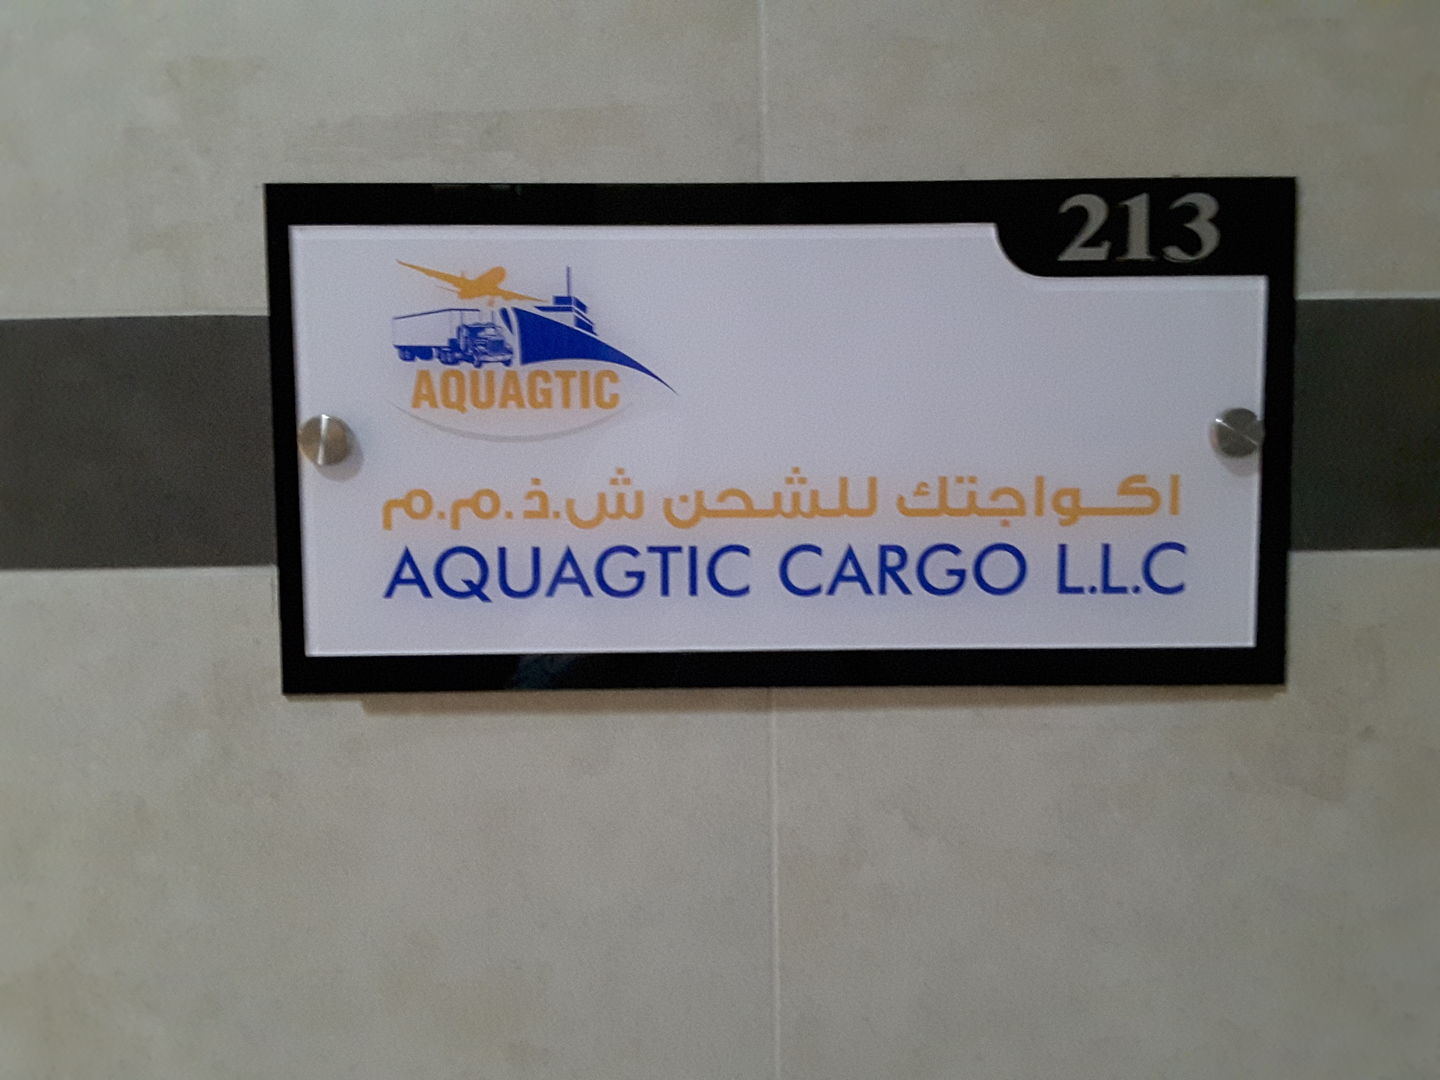 HiDubai-business-aquagtic-cargo-shipping-logistics-sea-cargo-services-port-saeed-dubai-2